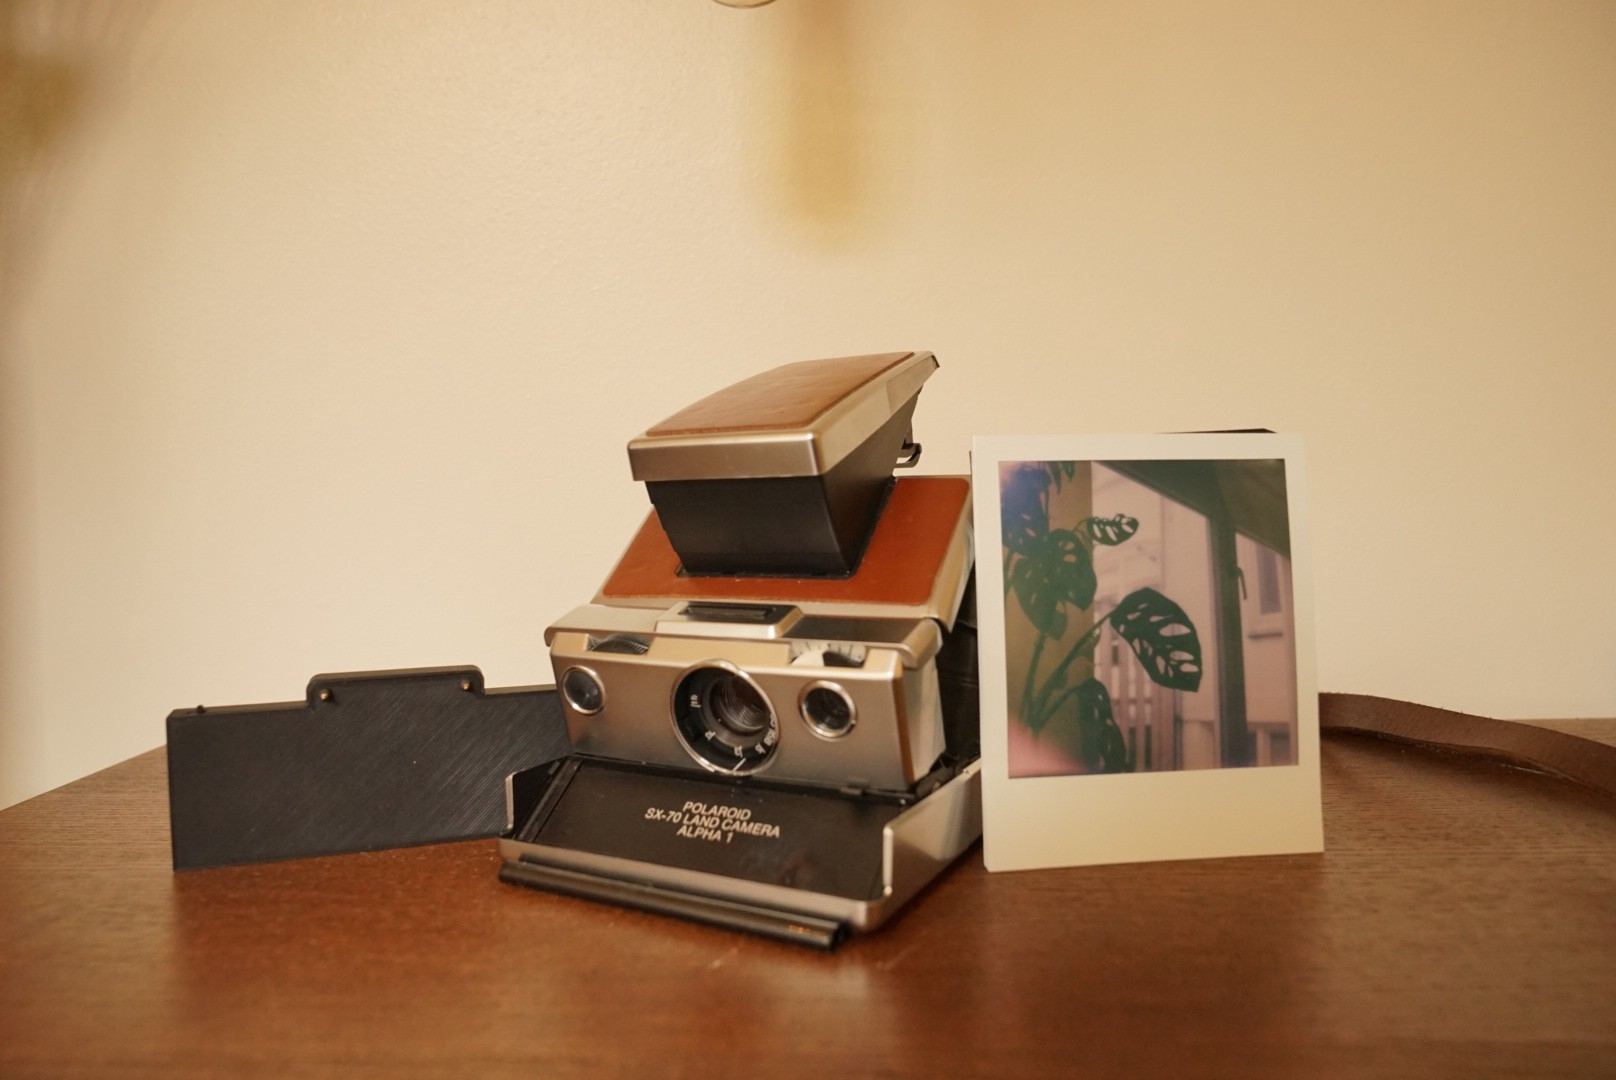 Remora-01, MiNT SLR 670 and first shot I took with this combo